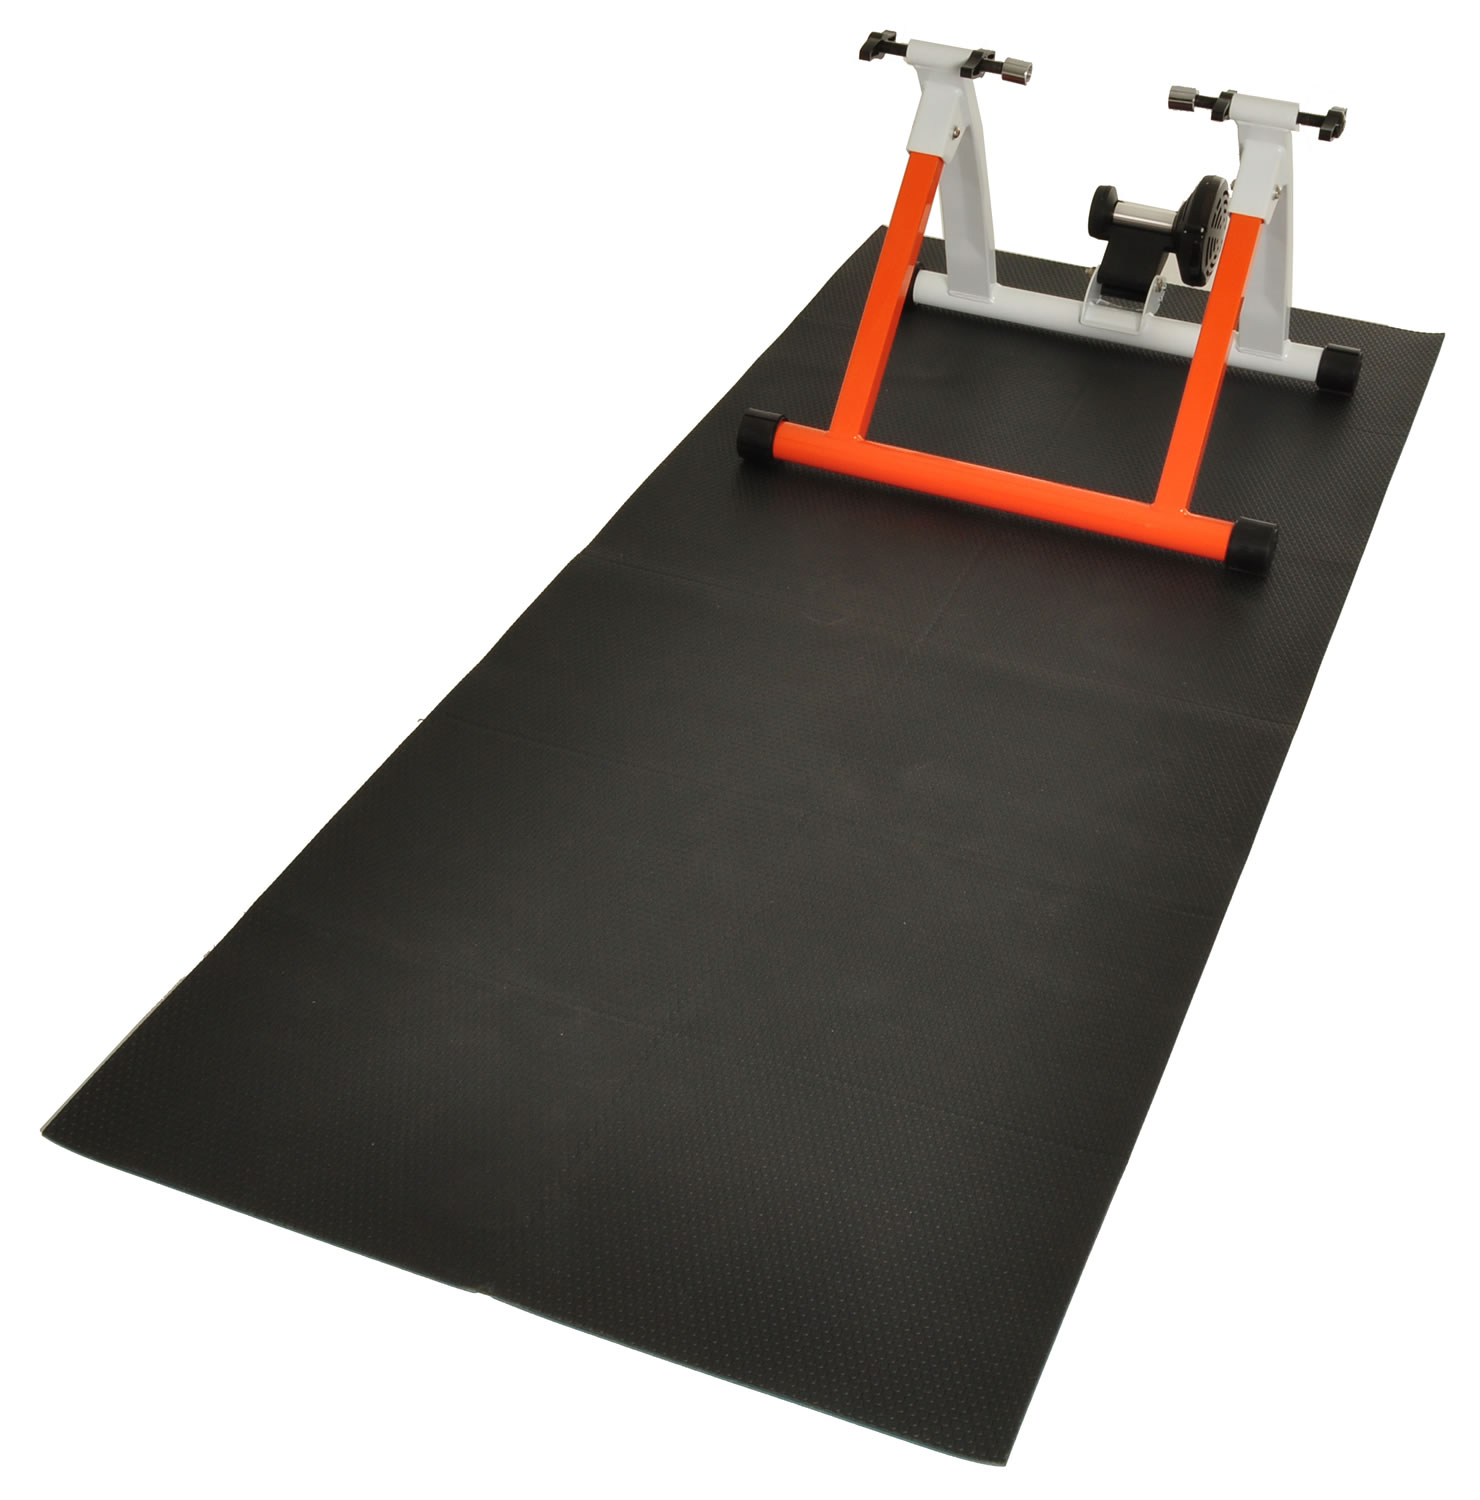 Conquer Folding Trainer Equipment Mat by